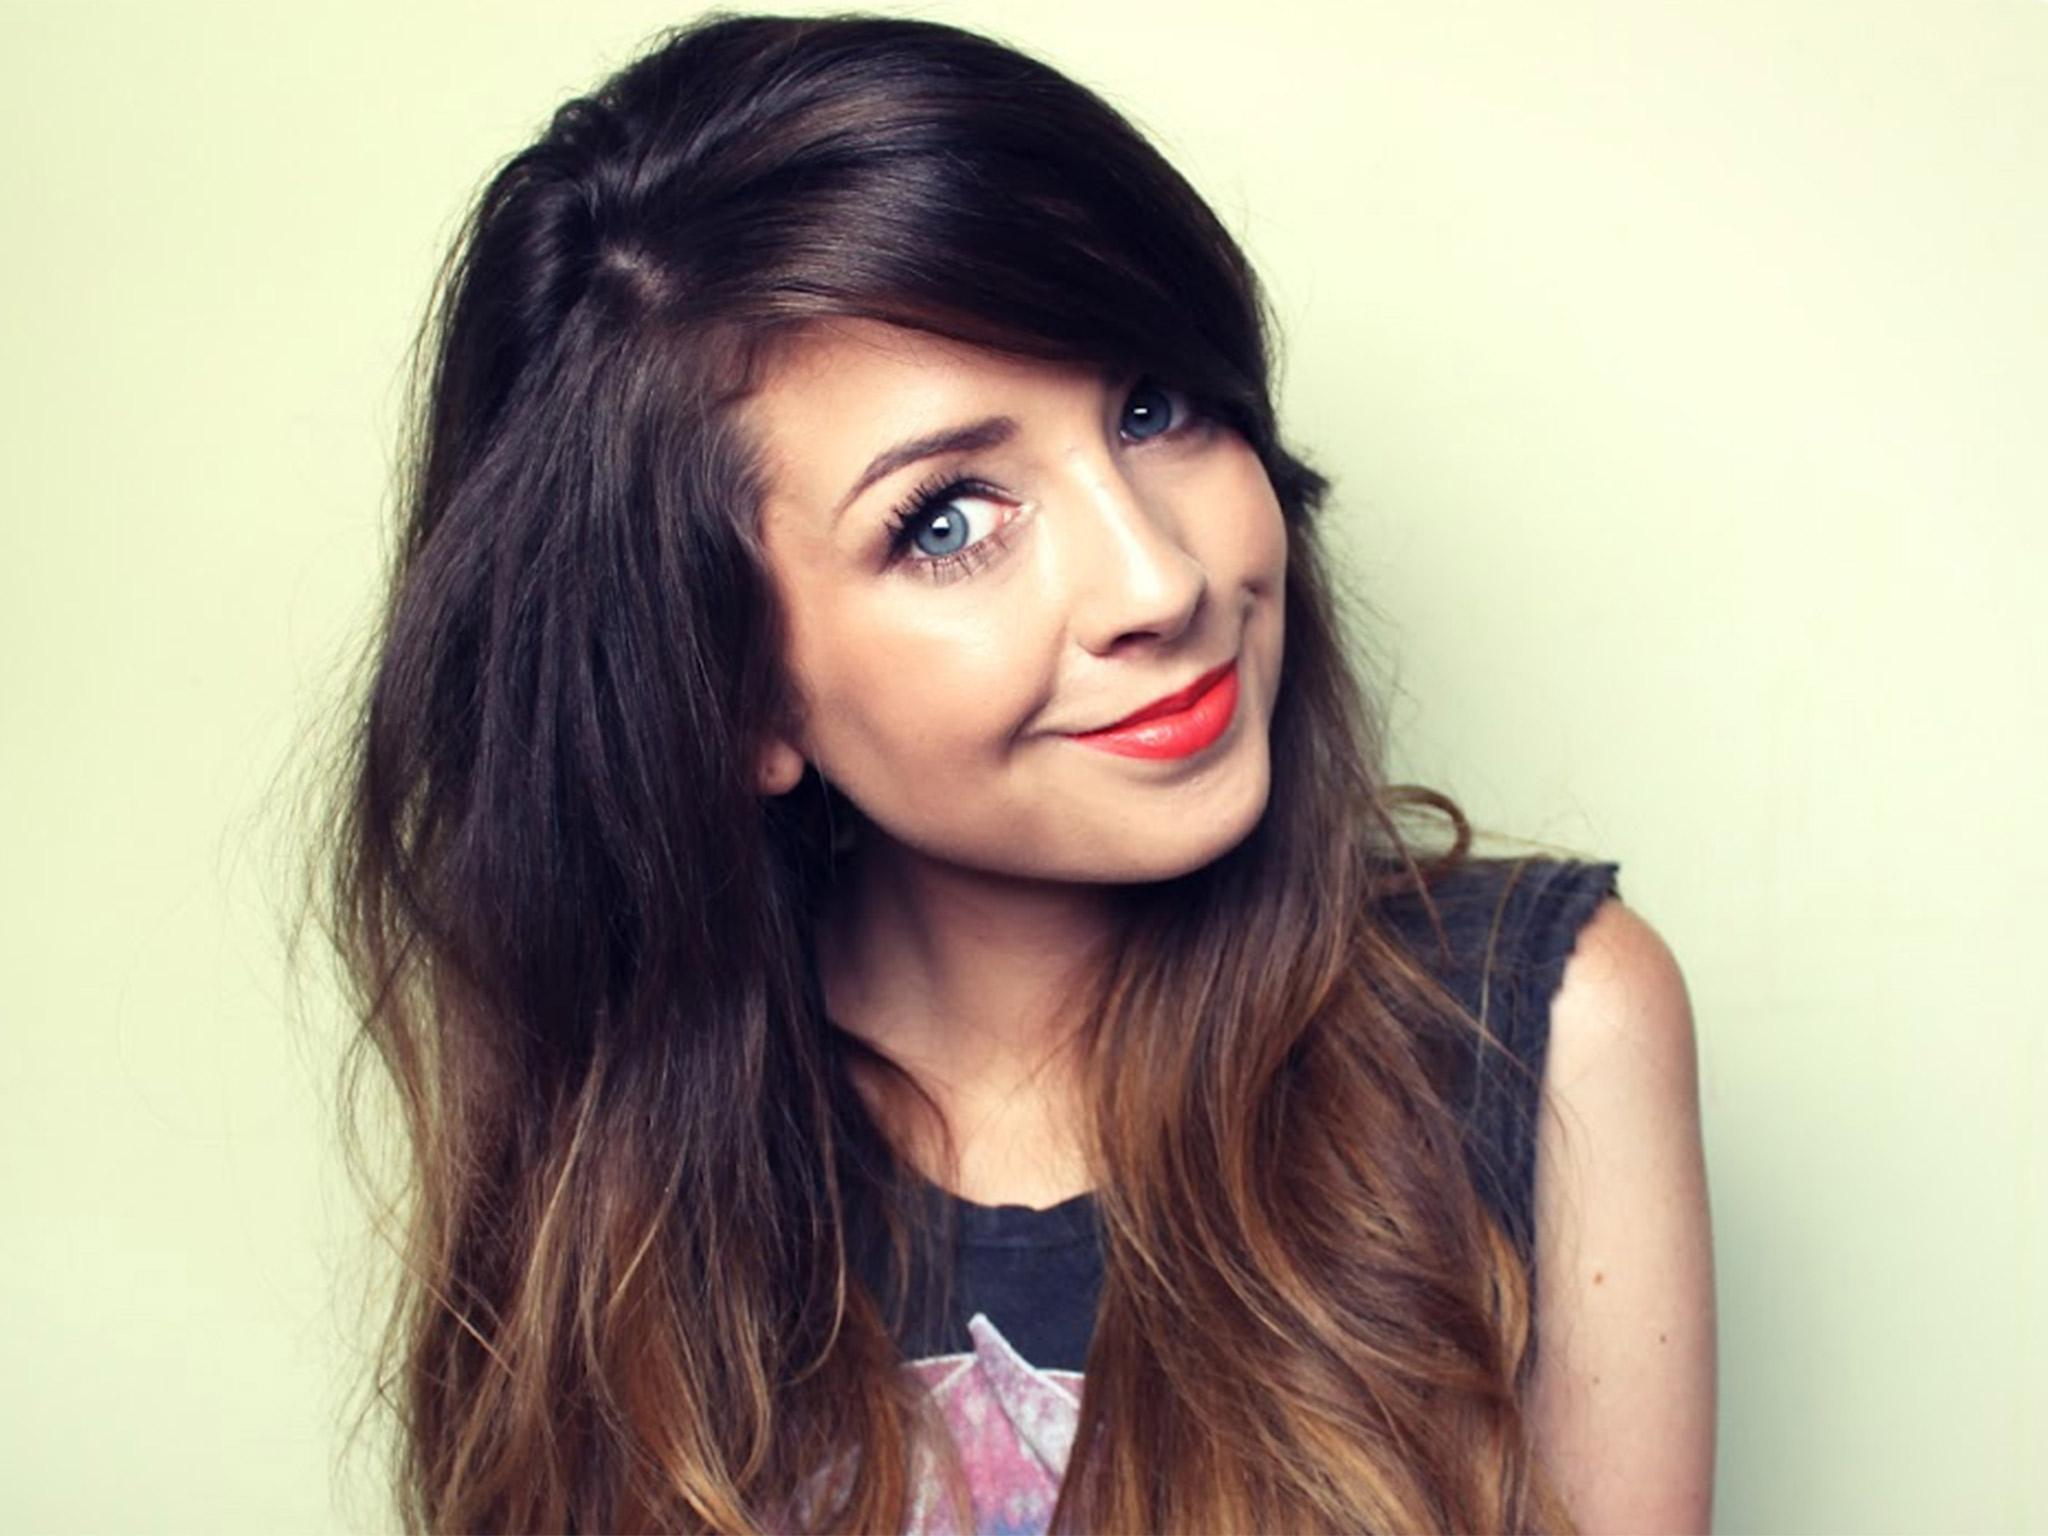 Who is this British Youtuber (First and Last name (her shorter name)